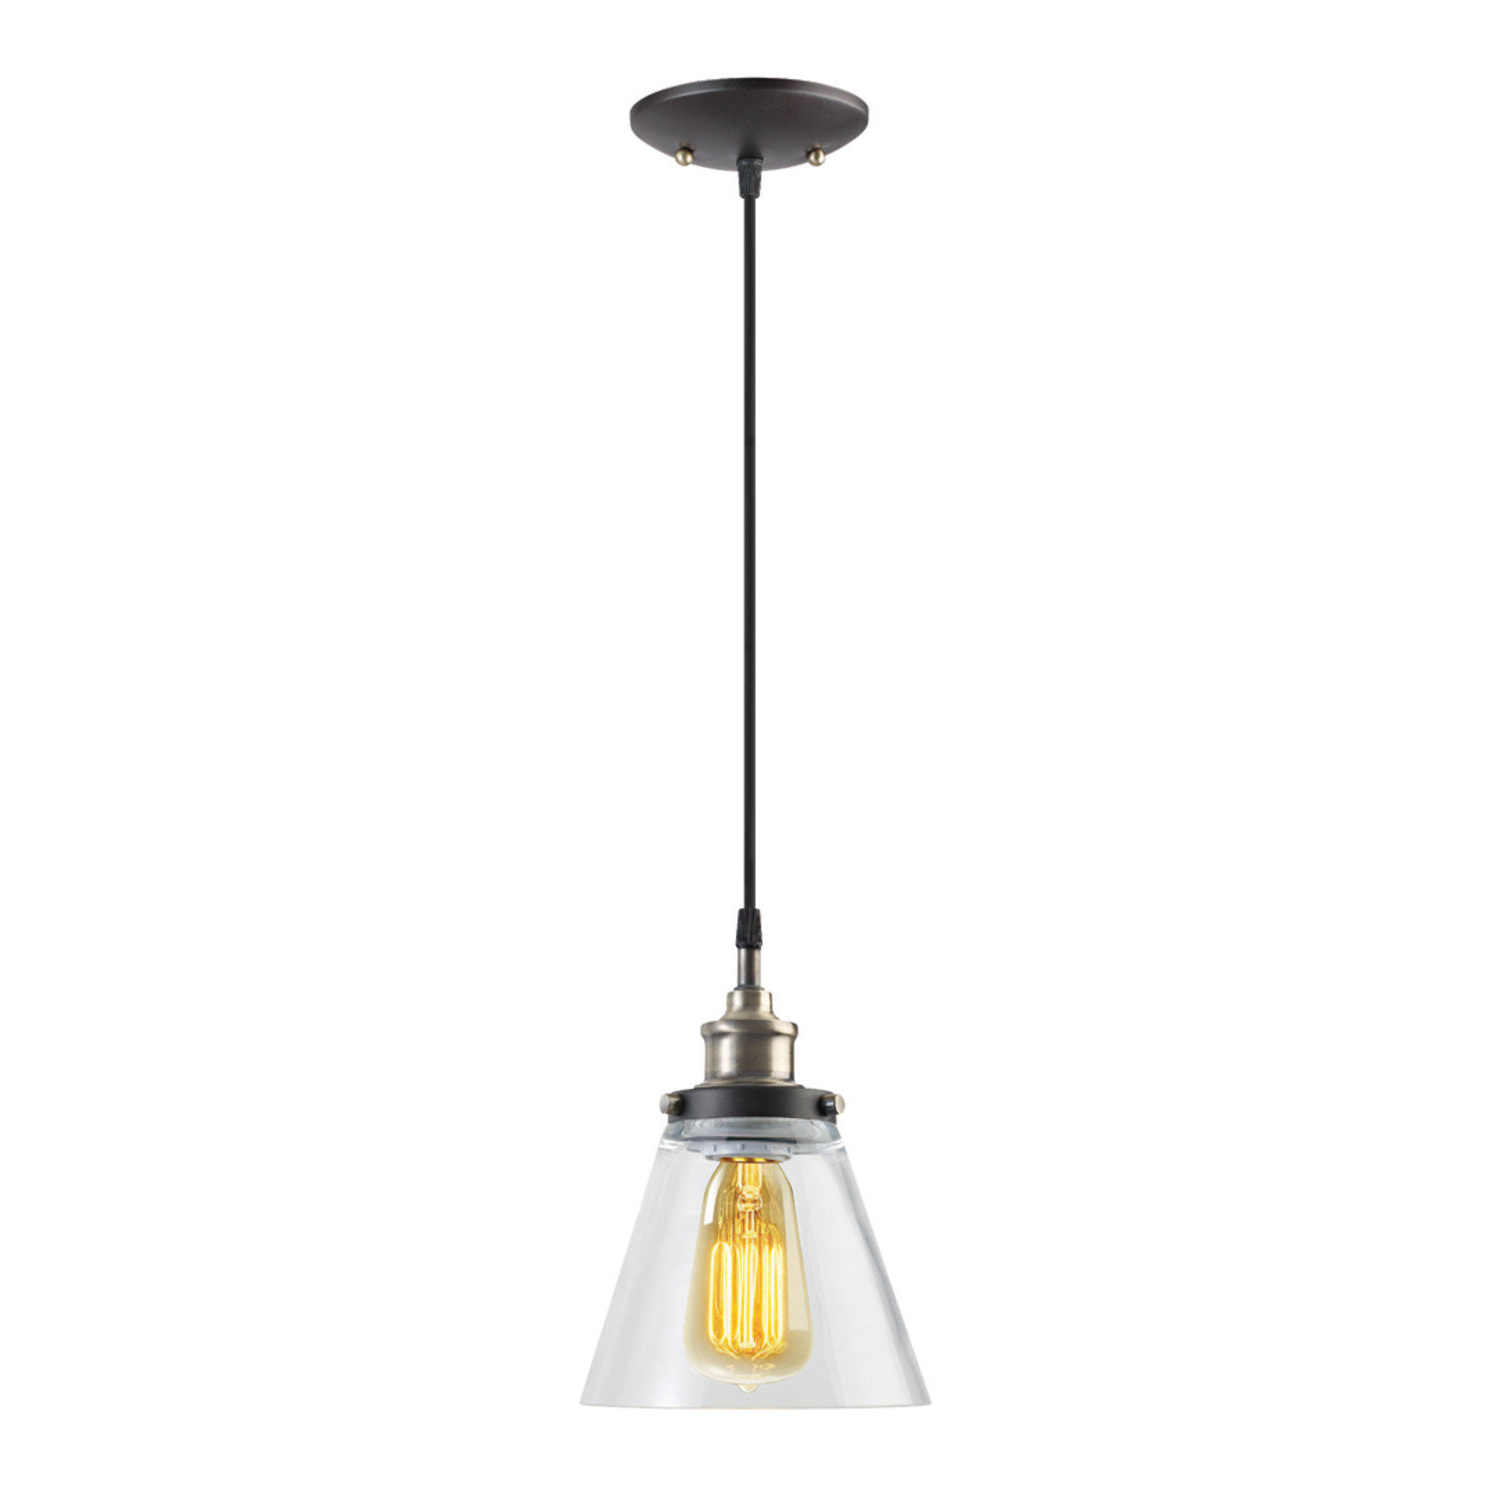 2020 Abelia 1 Light Single Cone Pendant Intended For Cinchring 1 Light Cone Pendants (View 1 of 25)